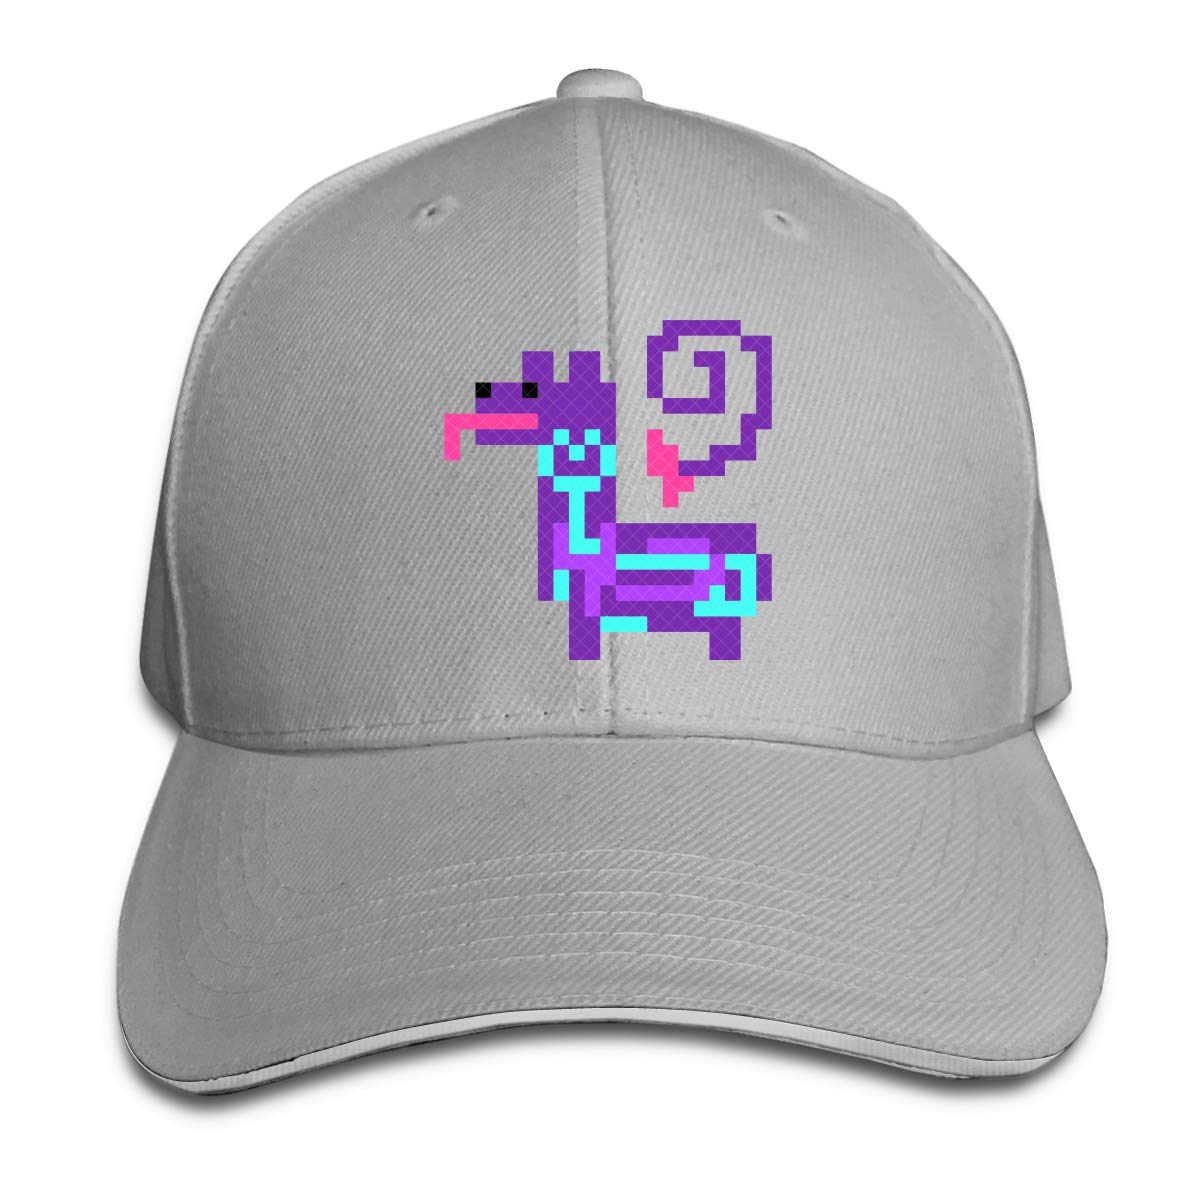 Unisex Casual Pixel Llama Peaked Hat Cotton Duckbill Cap for Mens and Womens